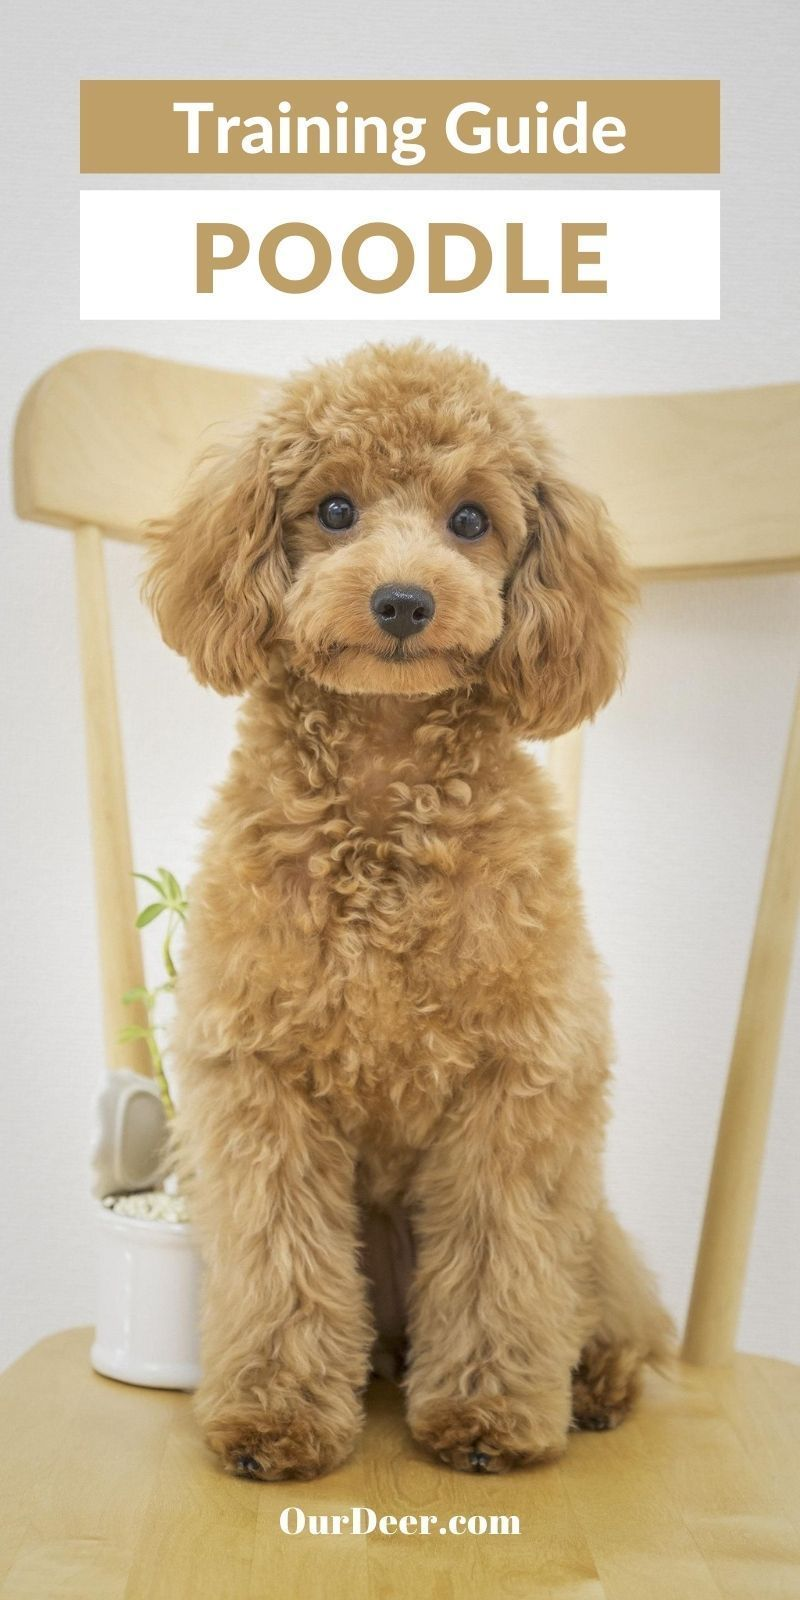 Poodles are considered among the most intelligent and easily trained of all dogs. #Poodle #PoodlePuppies #breedoverview #PoodlePuppy #PoodleTraining #PoodleHealth